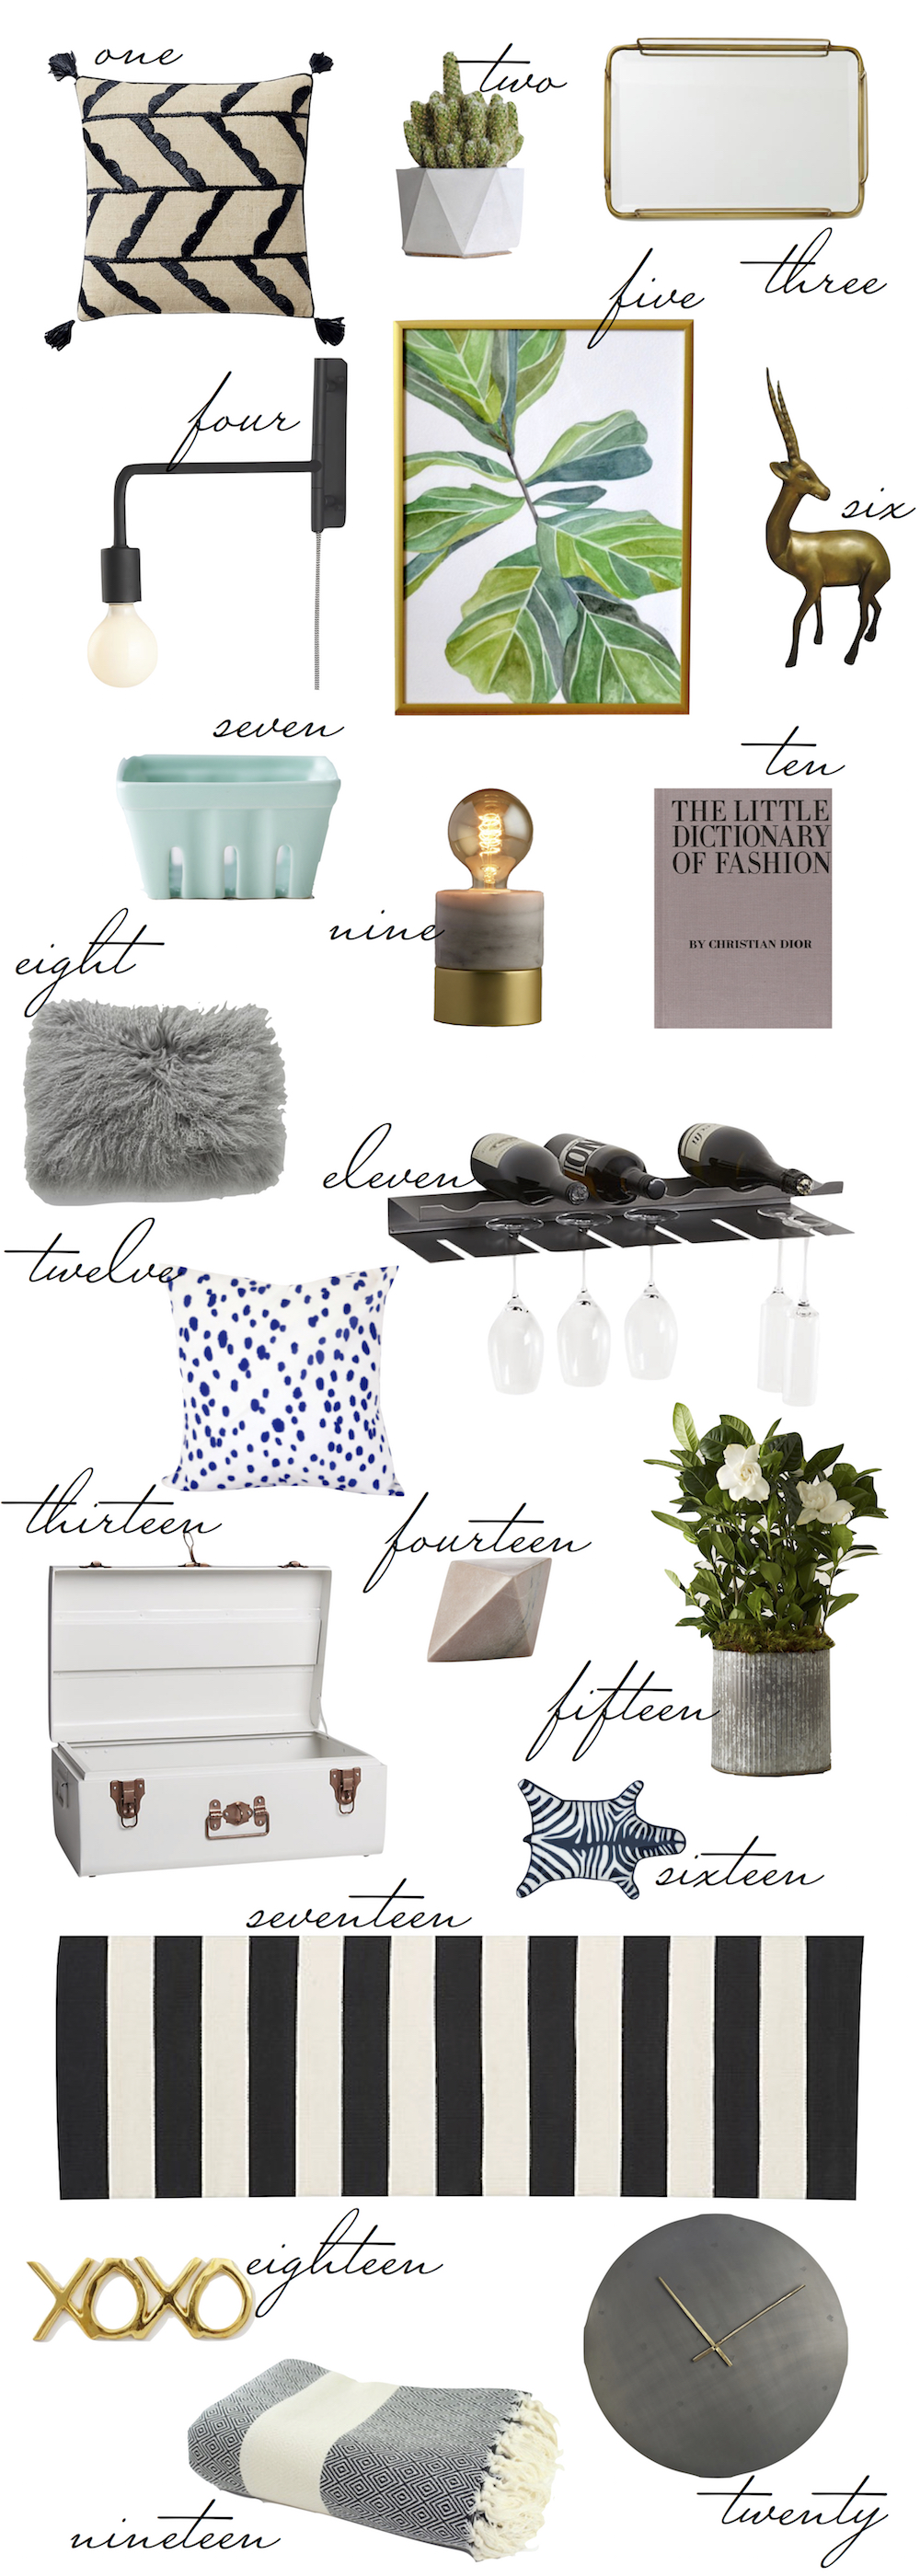 affordable home decor, all under $100! - kelly's chic under $100, kelly burns, the stripe